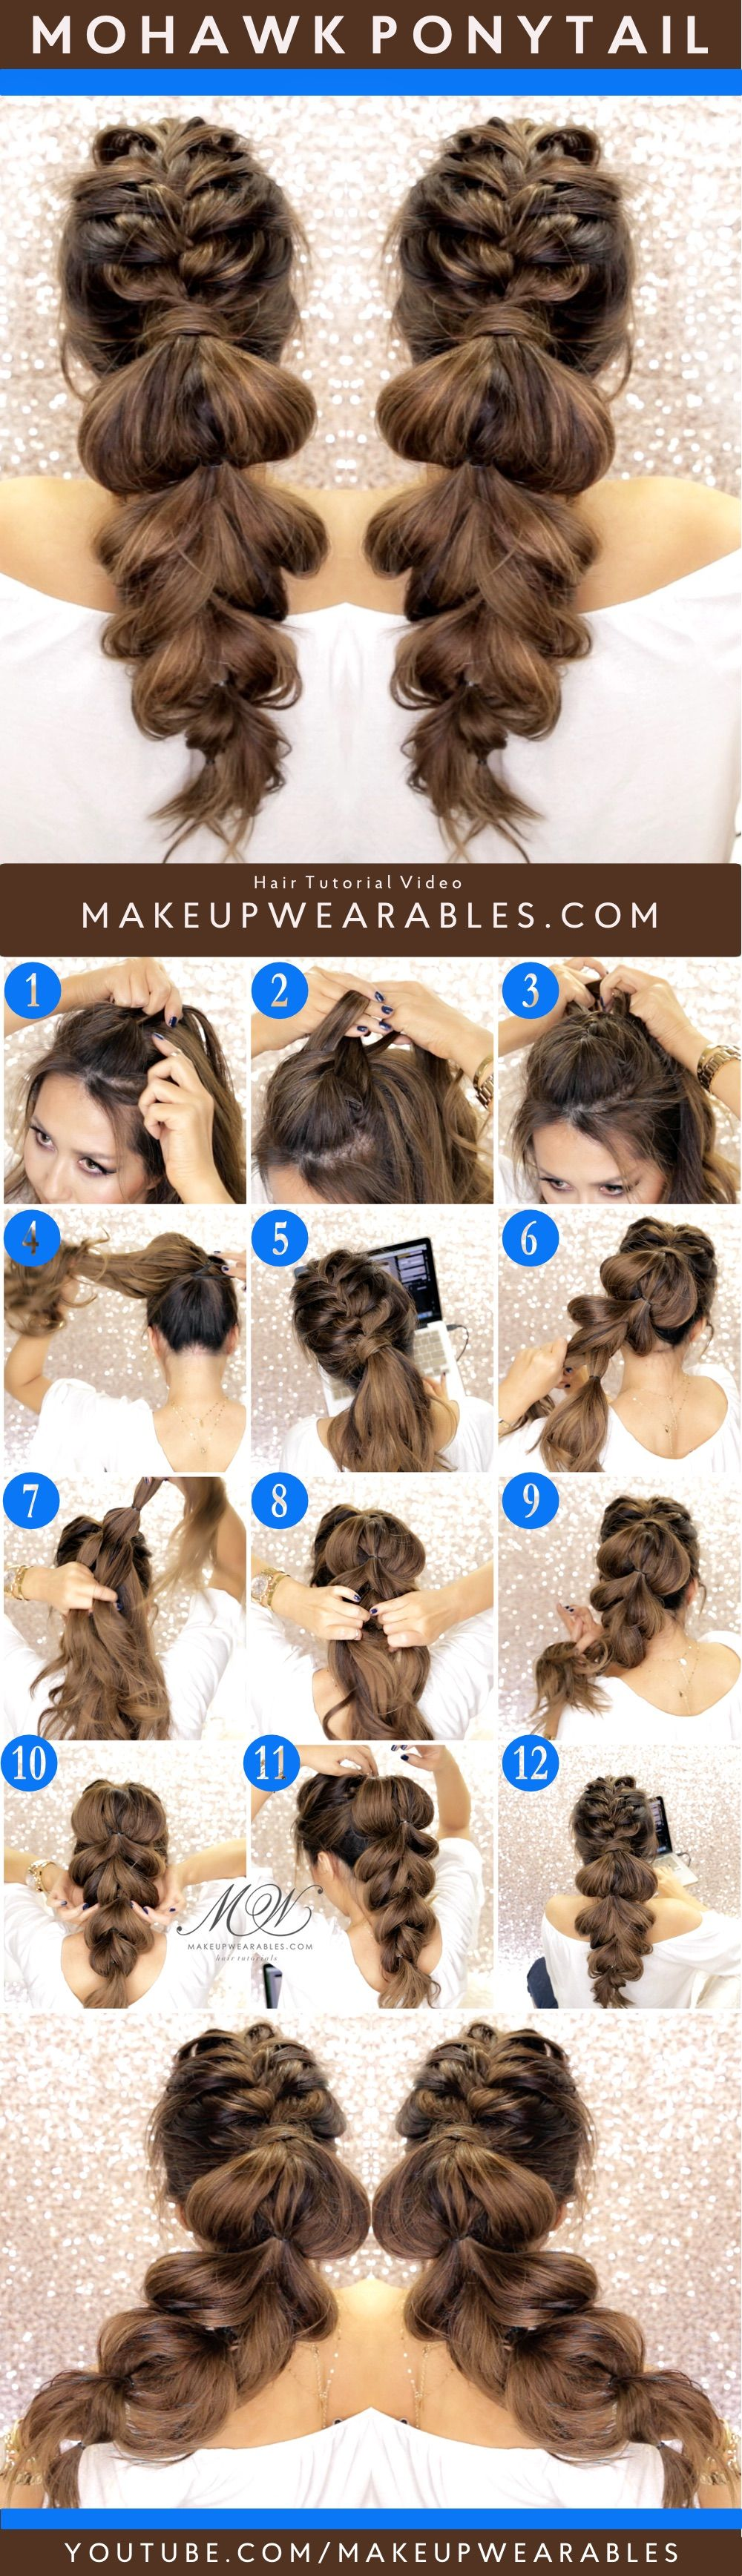 How to do a cute mohawk braid ponytail hairstyle for long medium